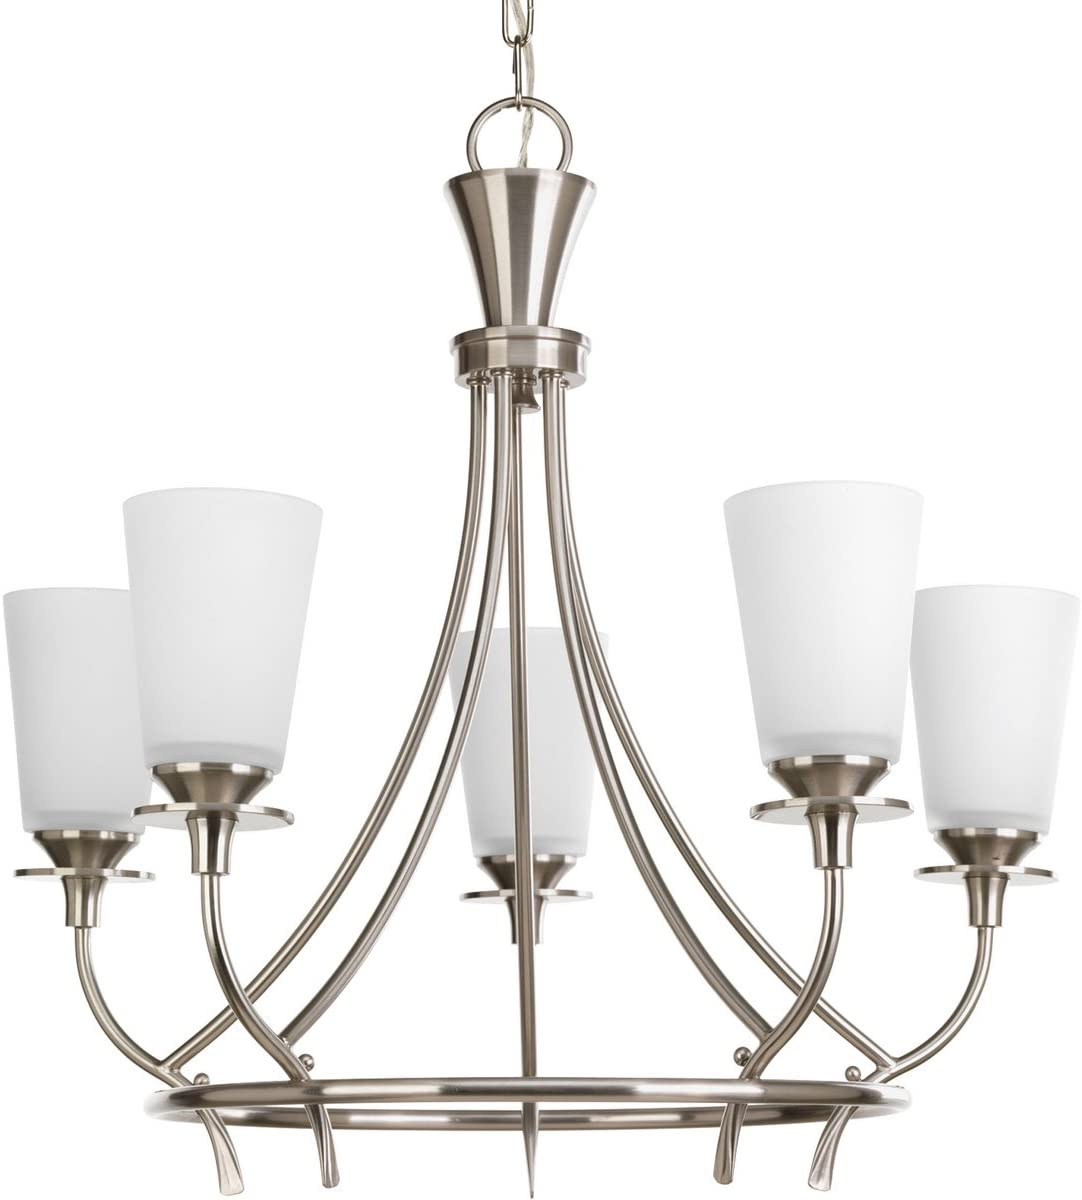 Progress Lighting P4006-09 Transitional Five Light Chandelier from Cantata Collection in Pwt, Nckl, B S, Slvr. Finish, Brushed Nickel